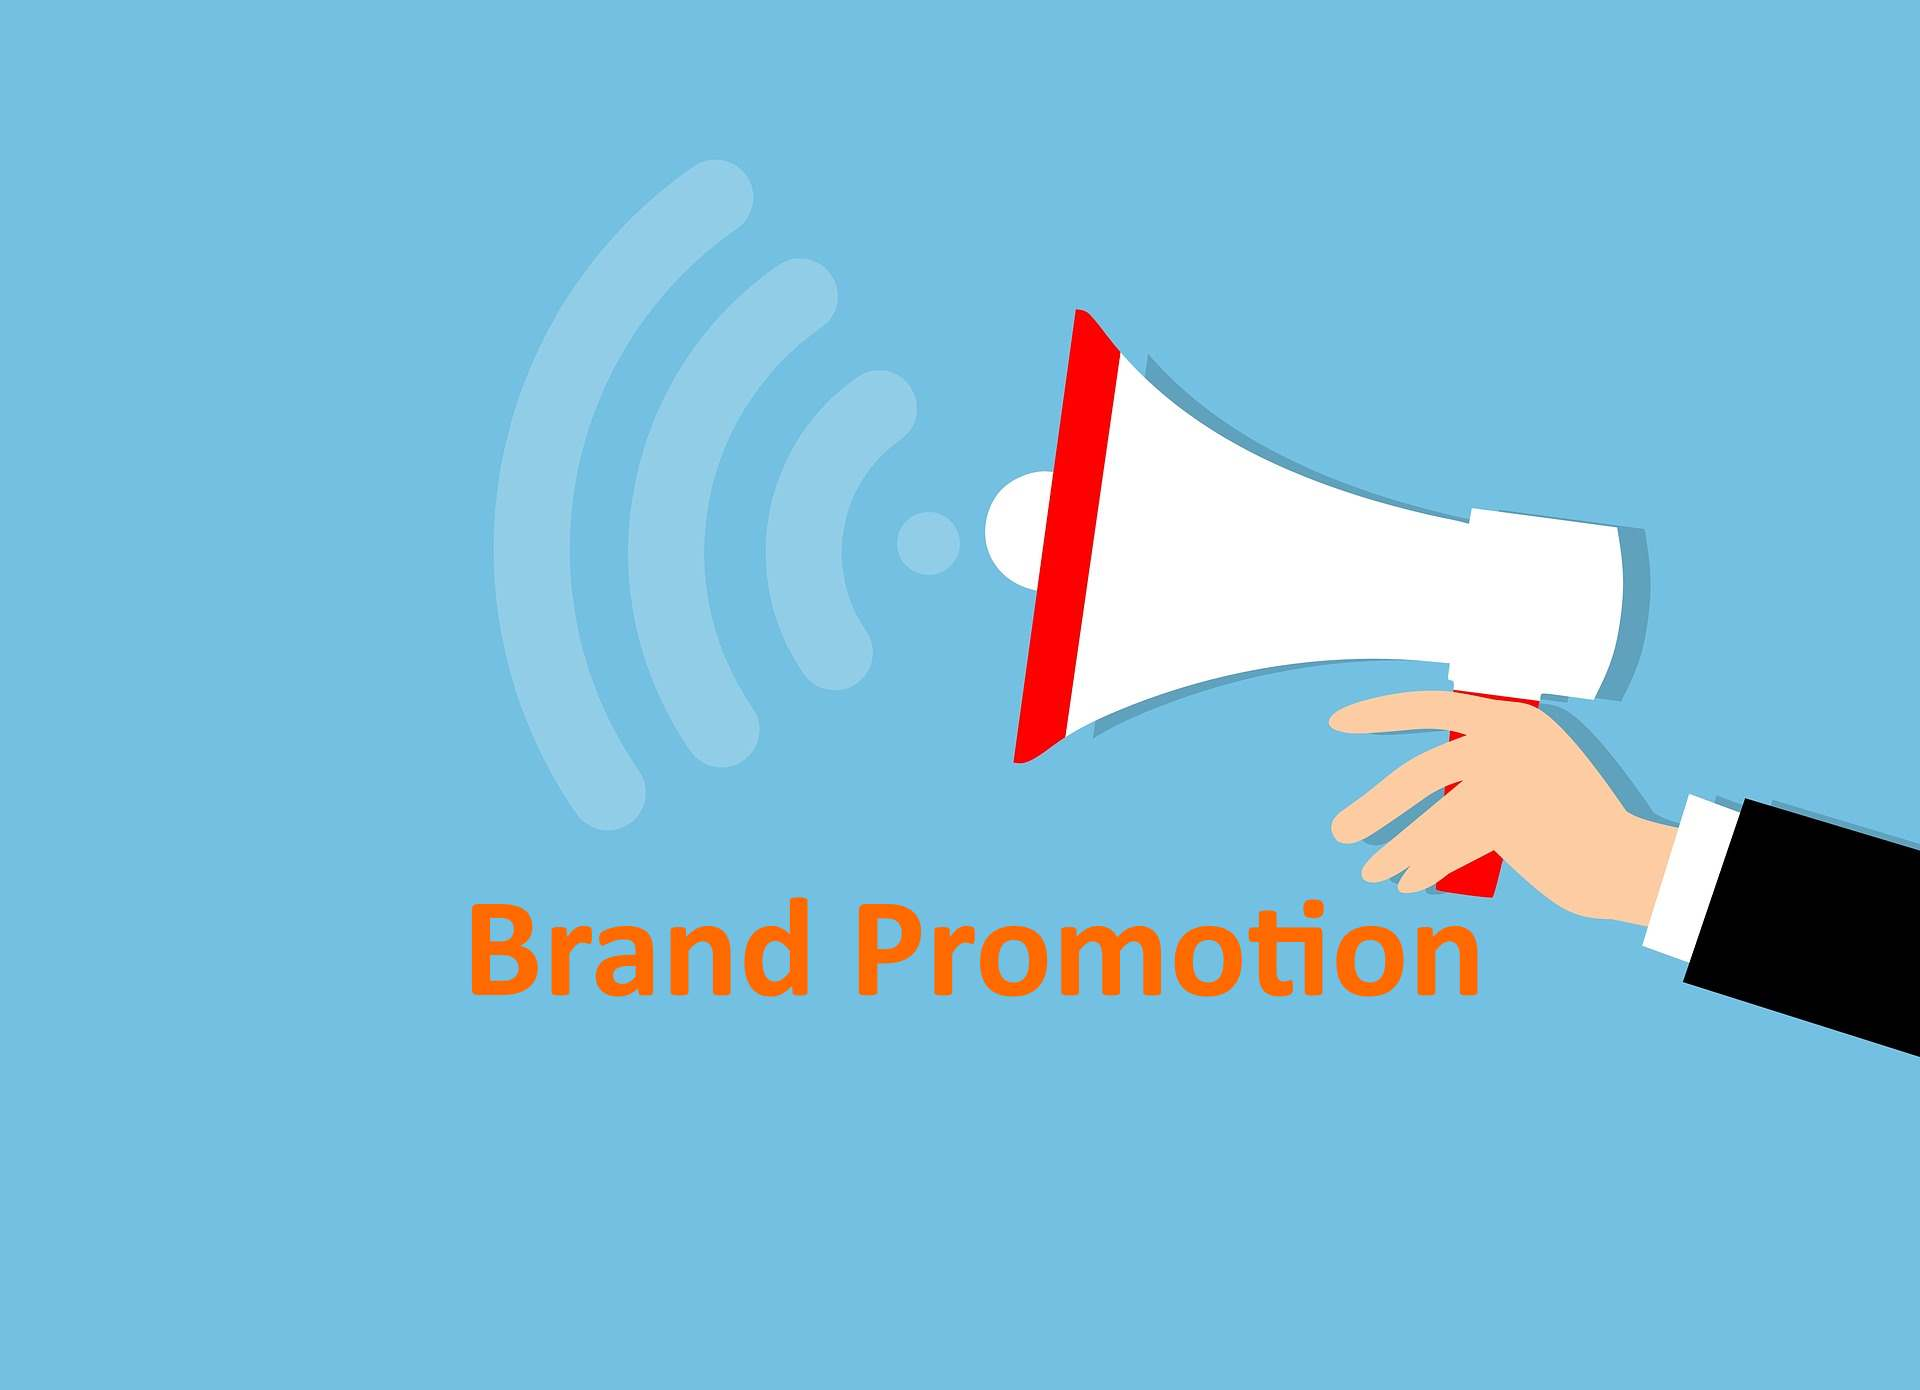 Step 8 in brand building: promote your brand